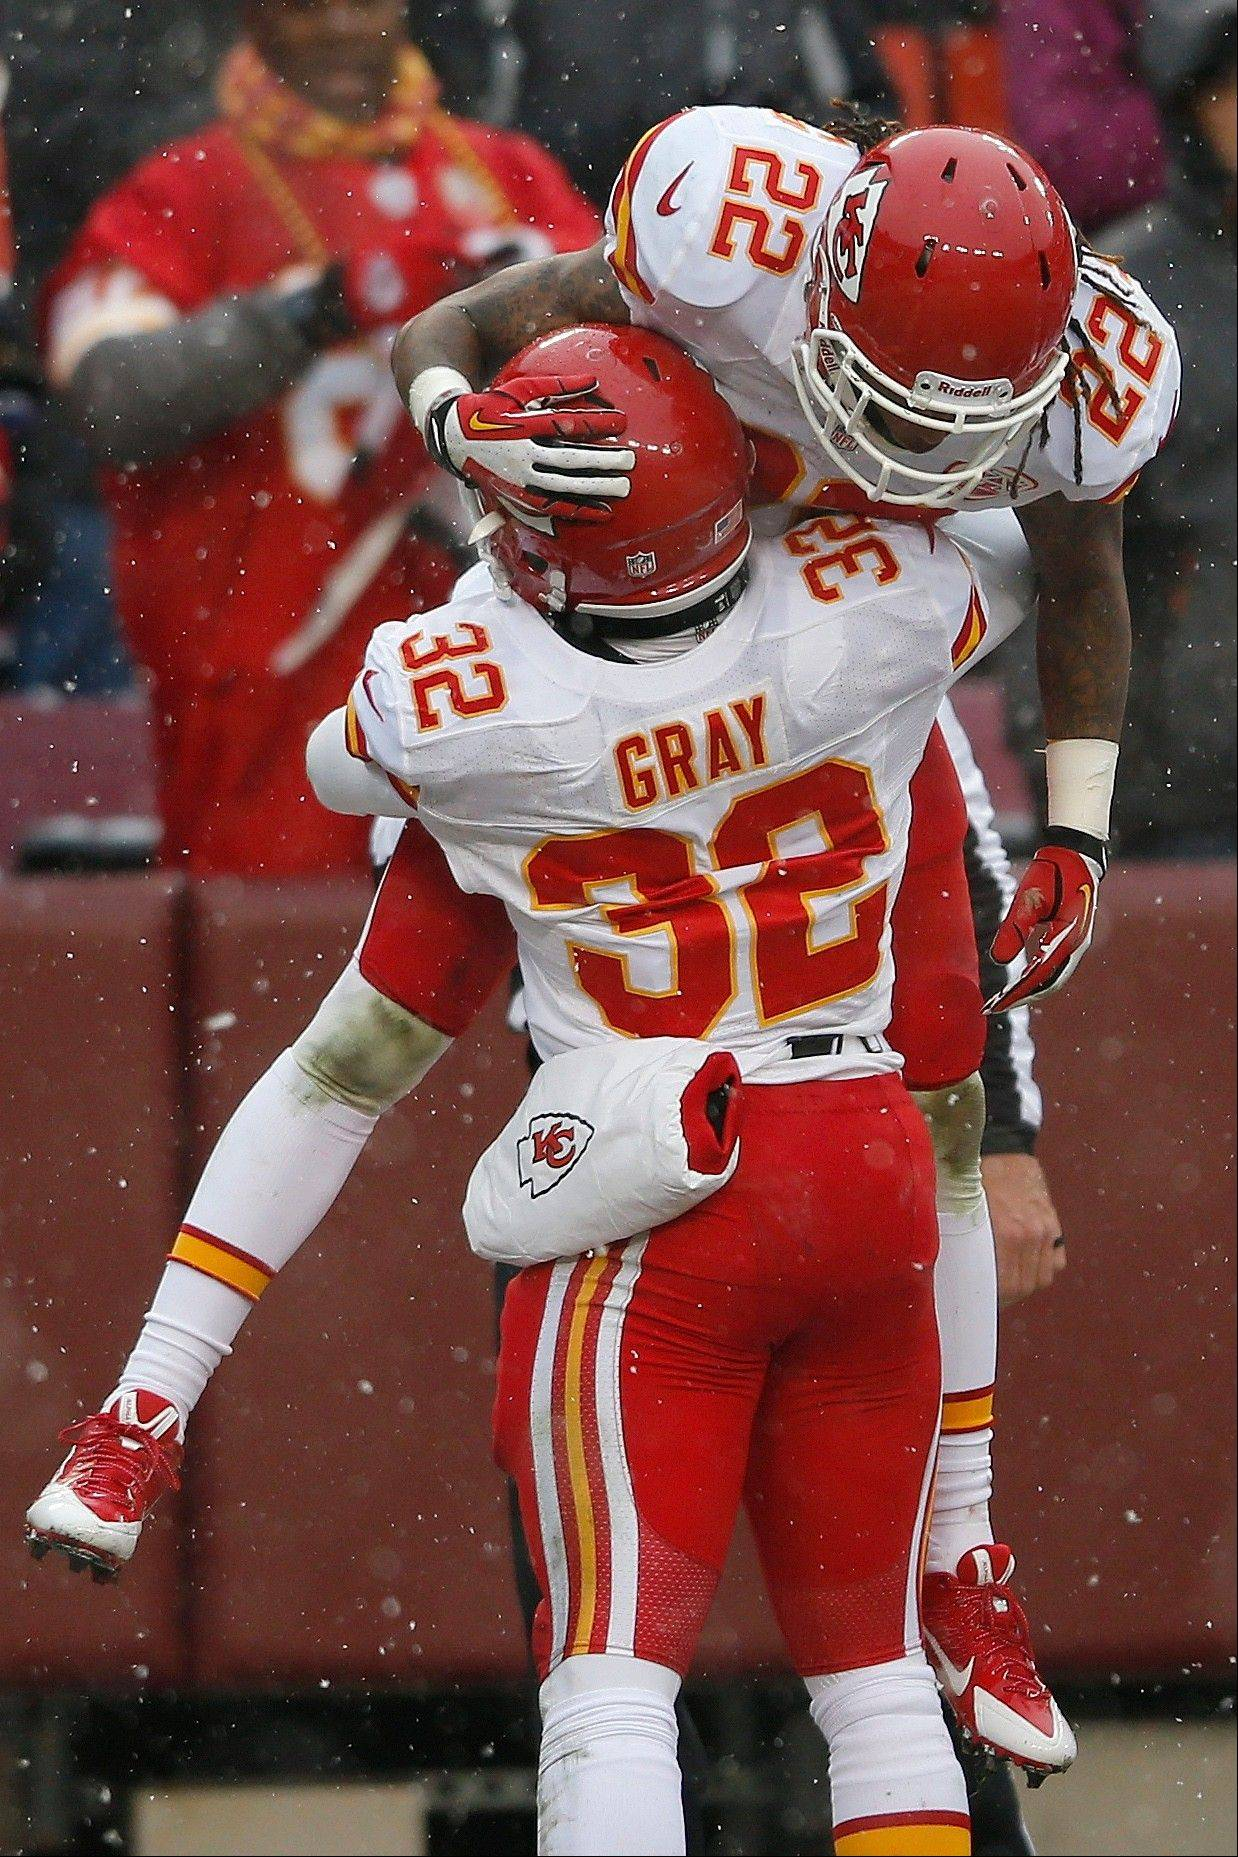 Kansas City Chiefs running back Cyrus Gray picks up wide receiver Dexter McCluster after McCluster returned a punt for a touchdown during the first half of an NFL football game against Washington in Landover, Md., Sunday, Dec. 8, 2013.